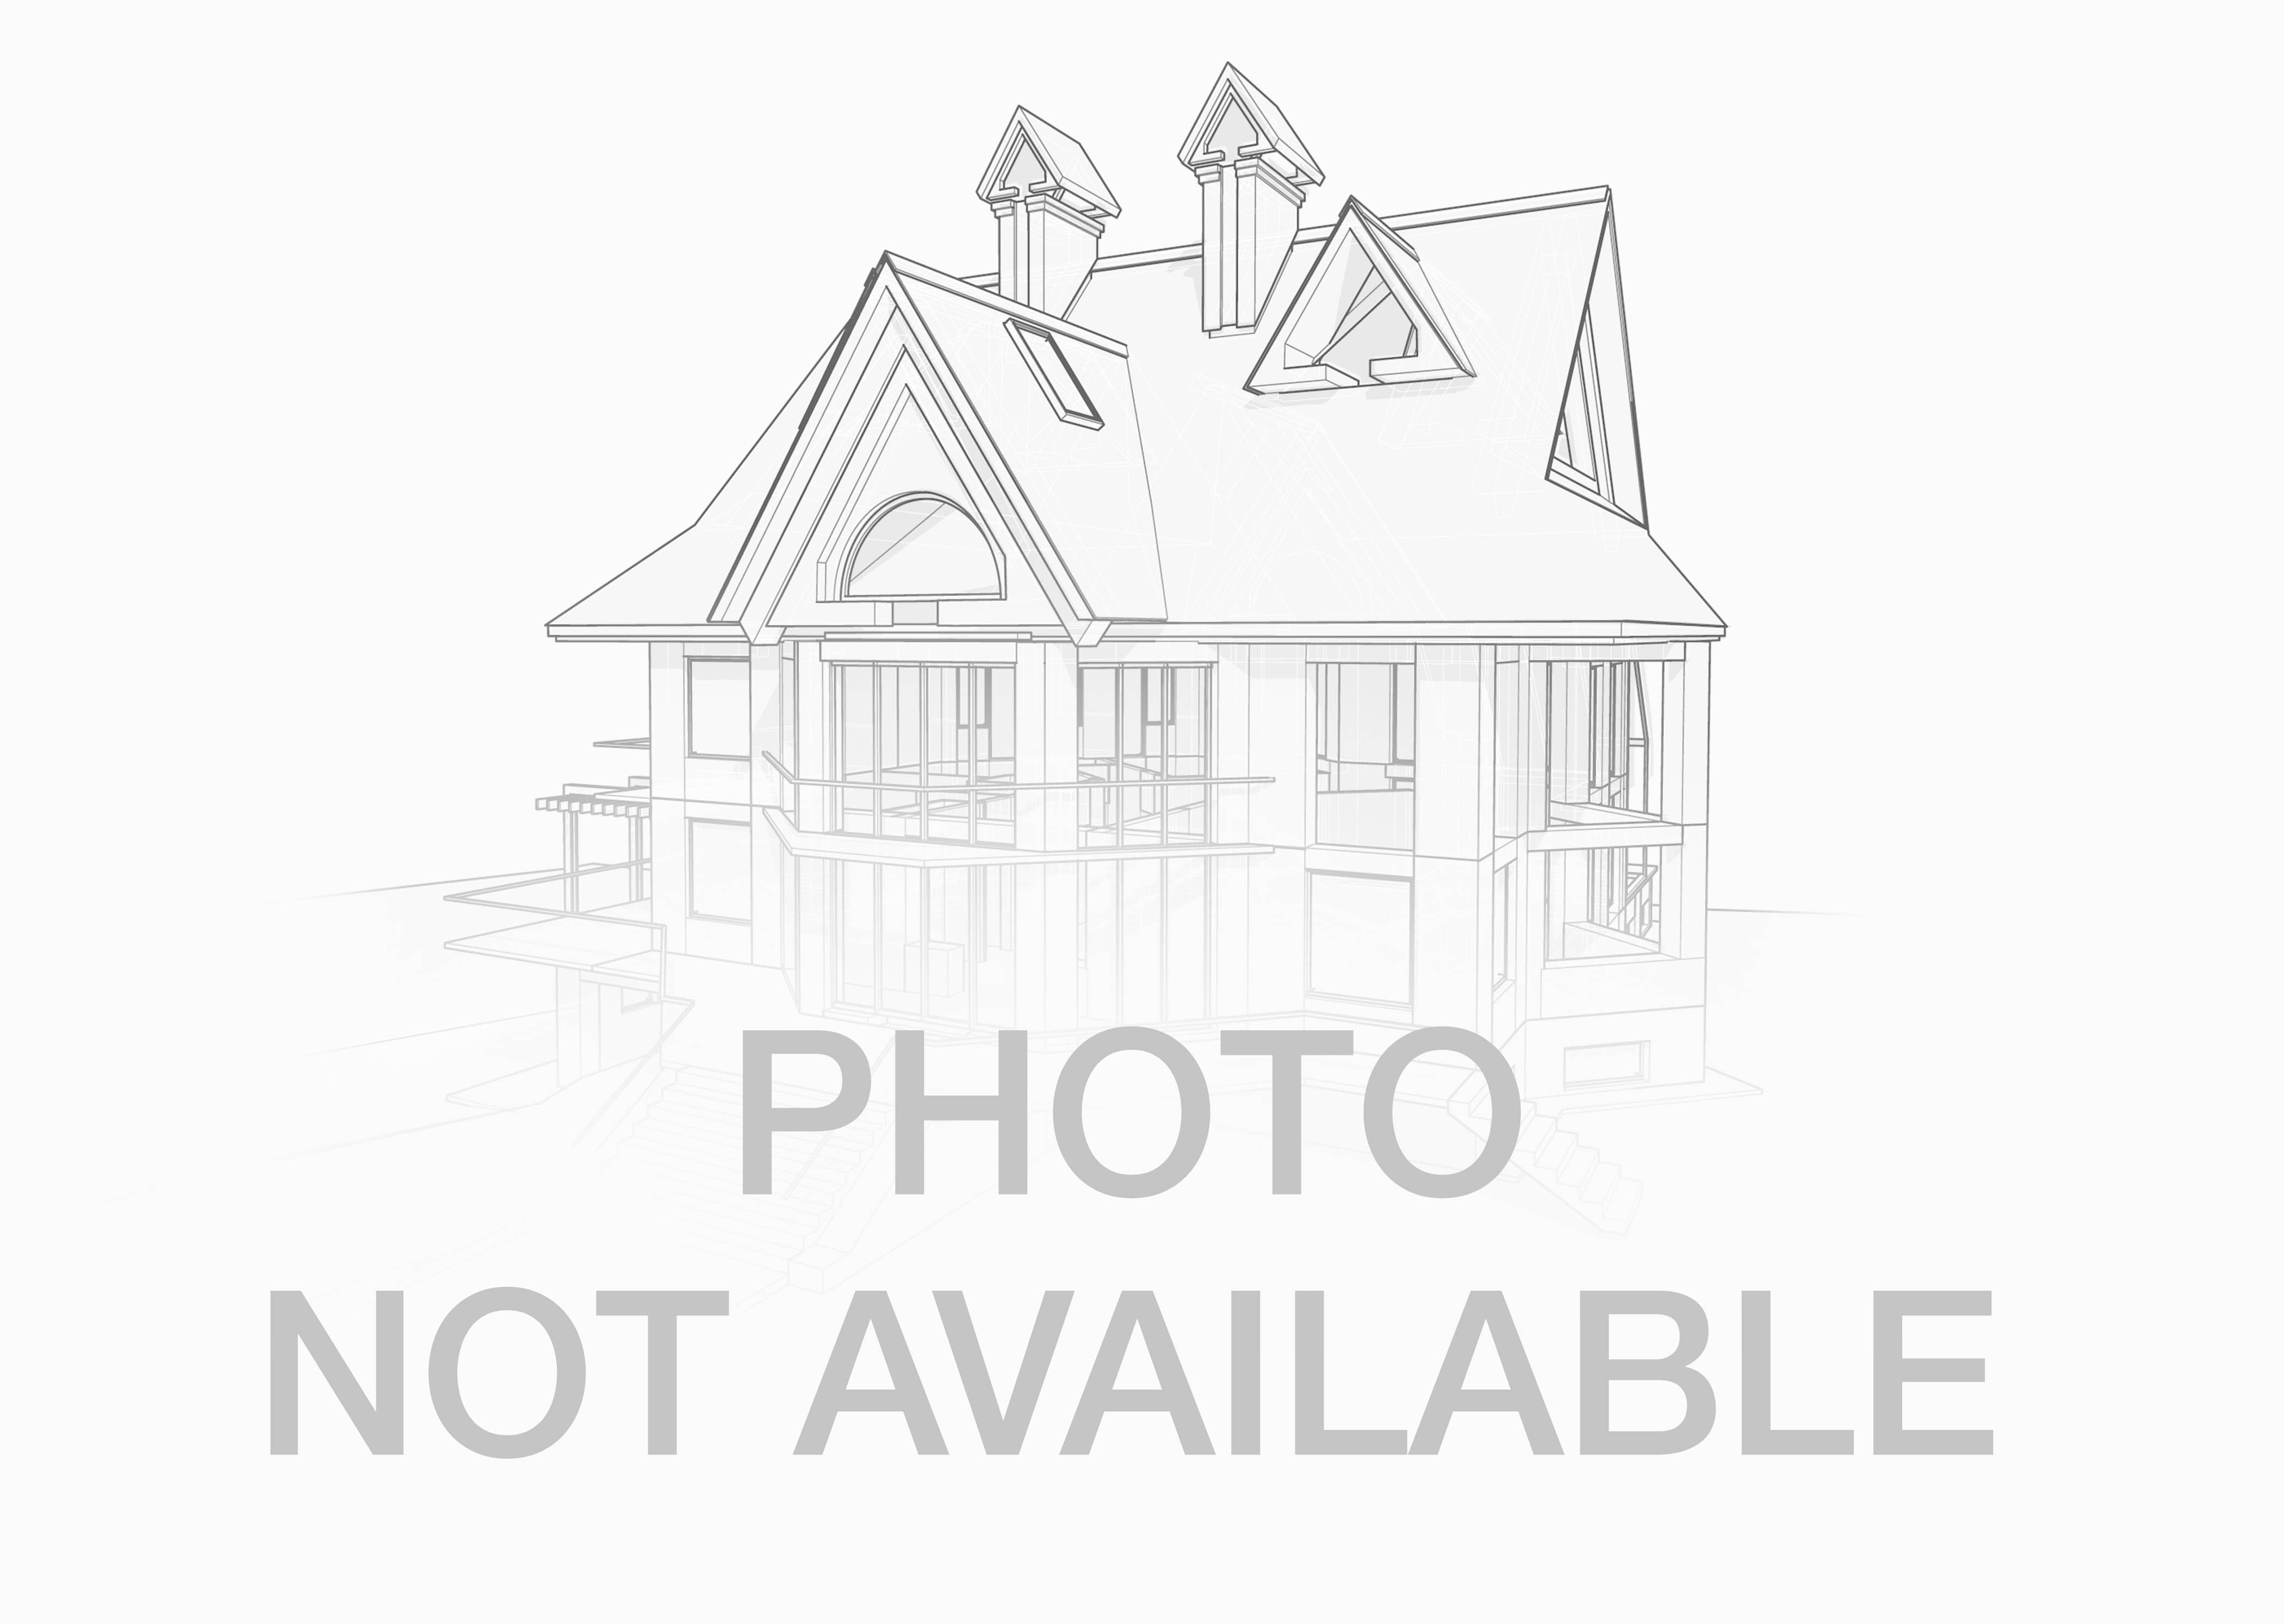 Nitro wv homes for sale for Wv home builders